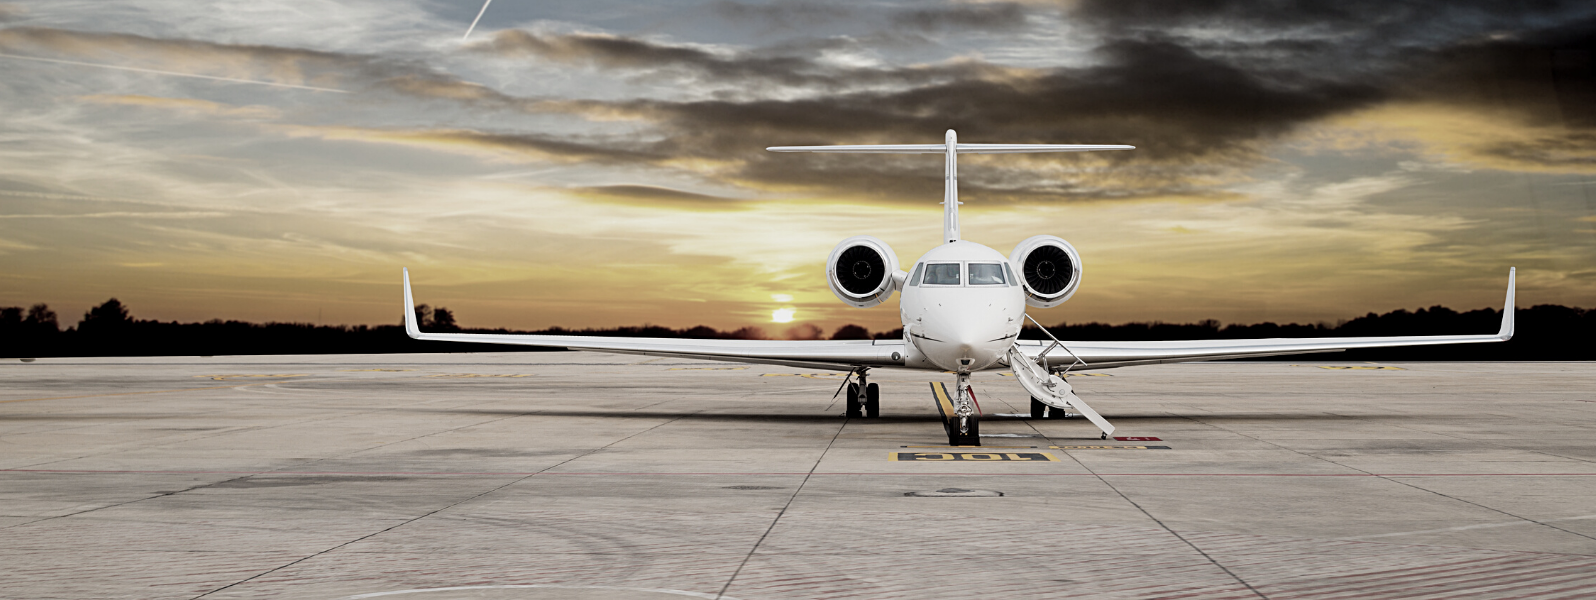 Introducing myairops fbo's Price Utility functionality header image